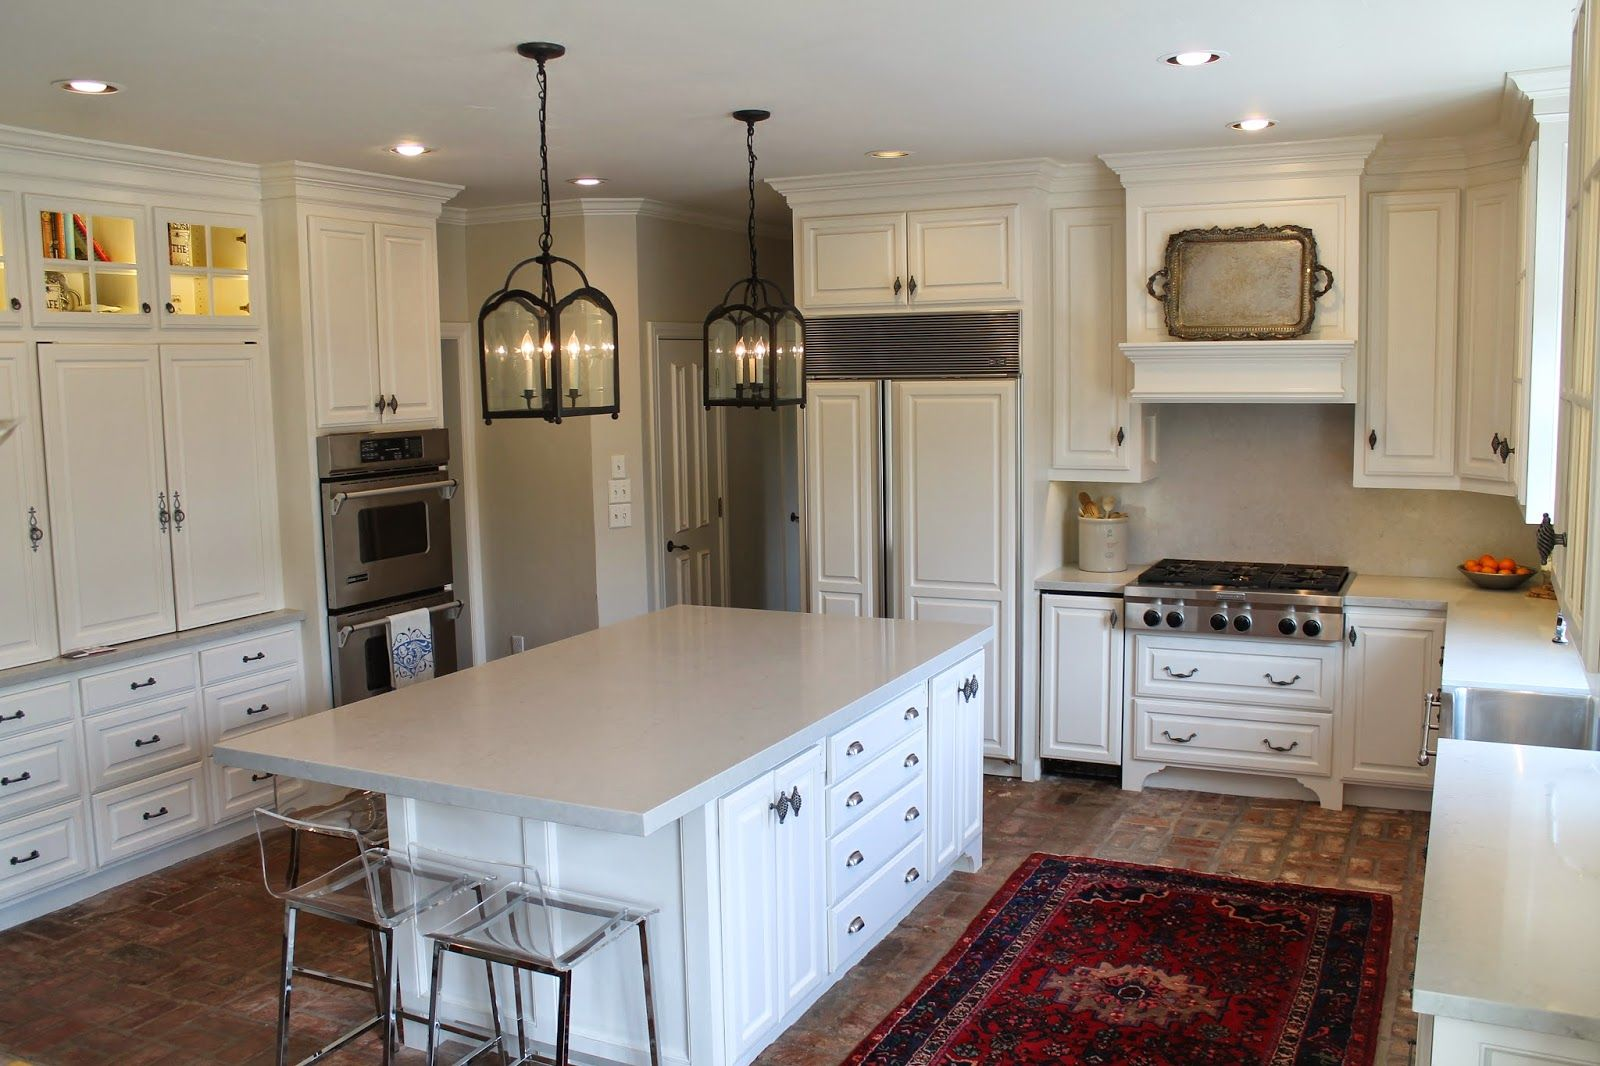 The Paint Throughout The Kitchen And Family Room Is Benjamin Moore